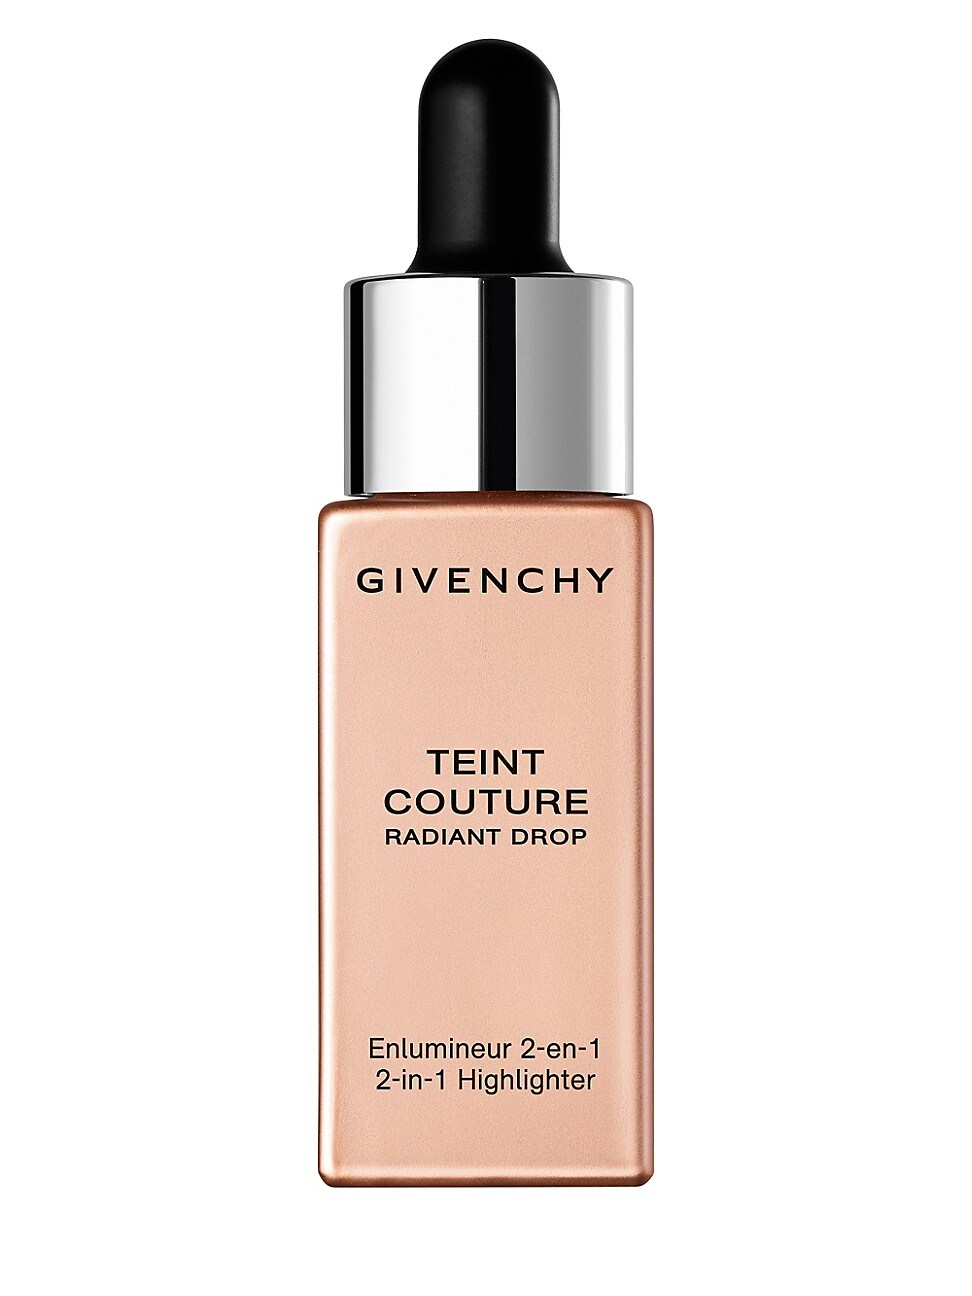 Givenchy Women's Teint Couture Radiant Drop 2-in-1 Highlighter In Radiant Gold